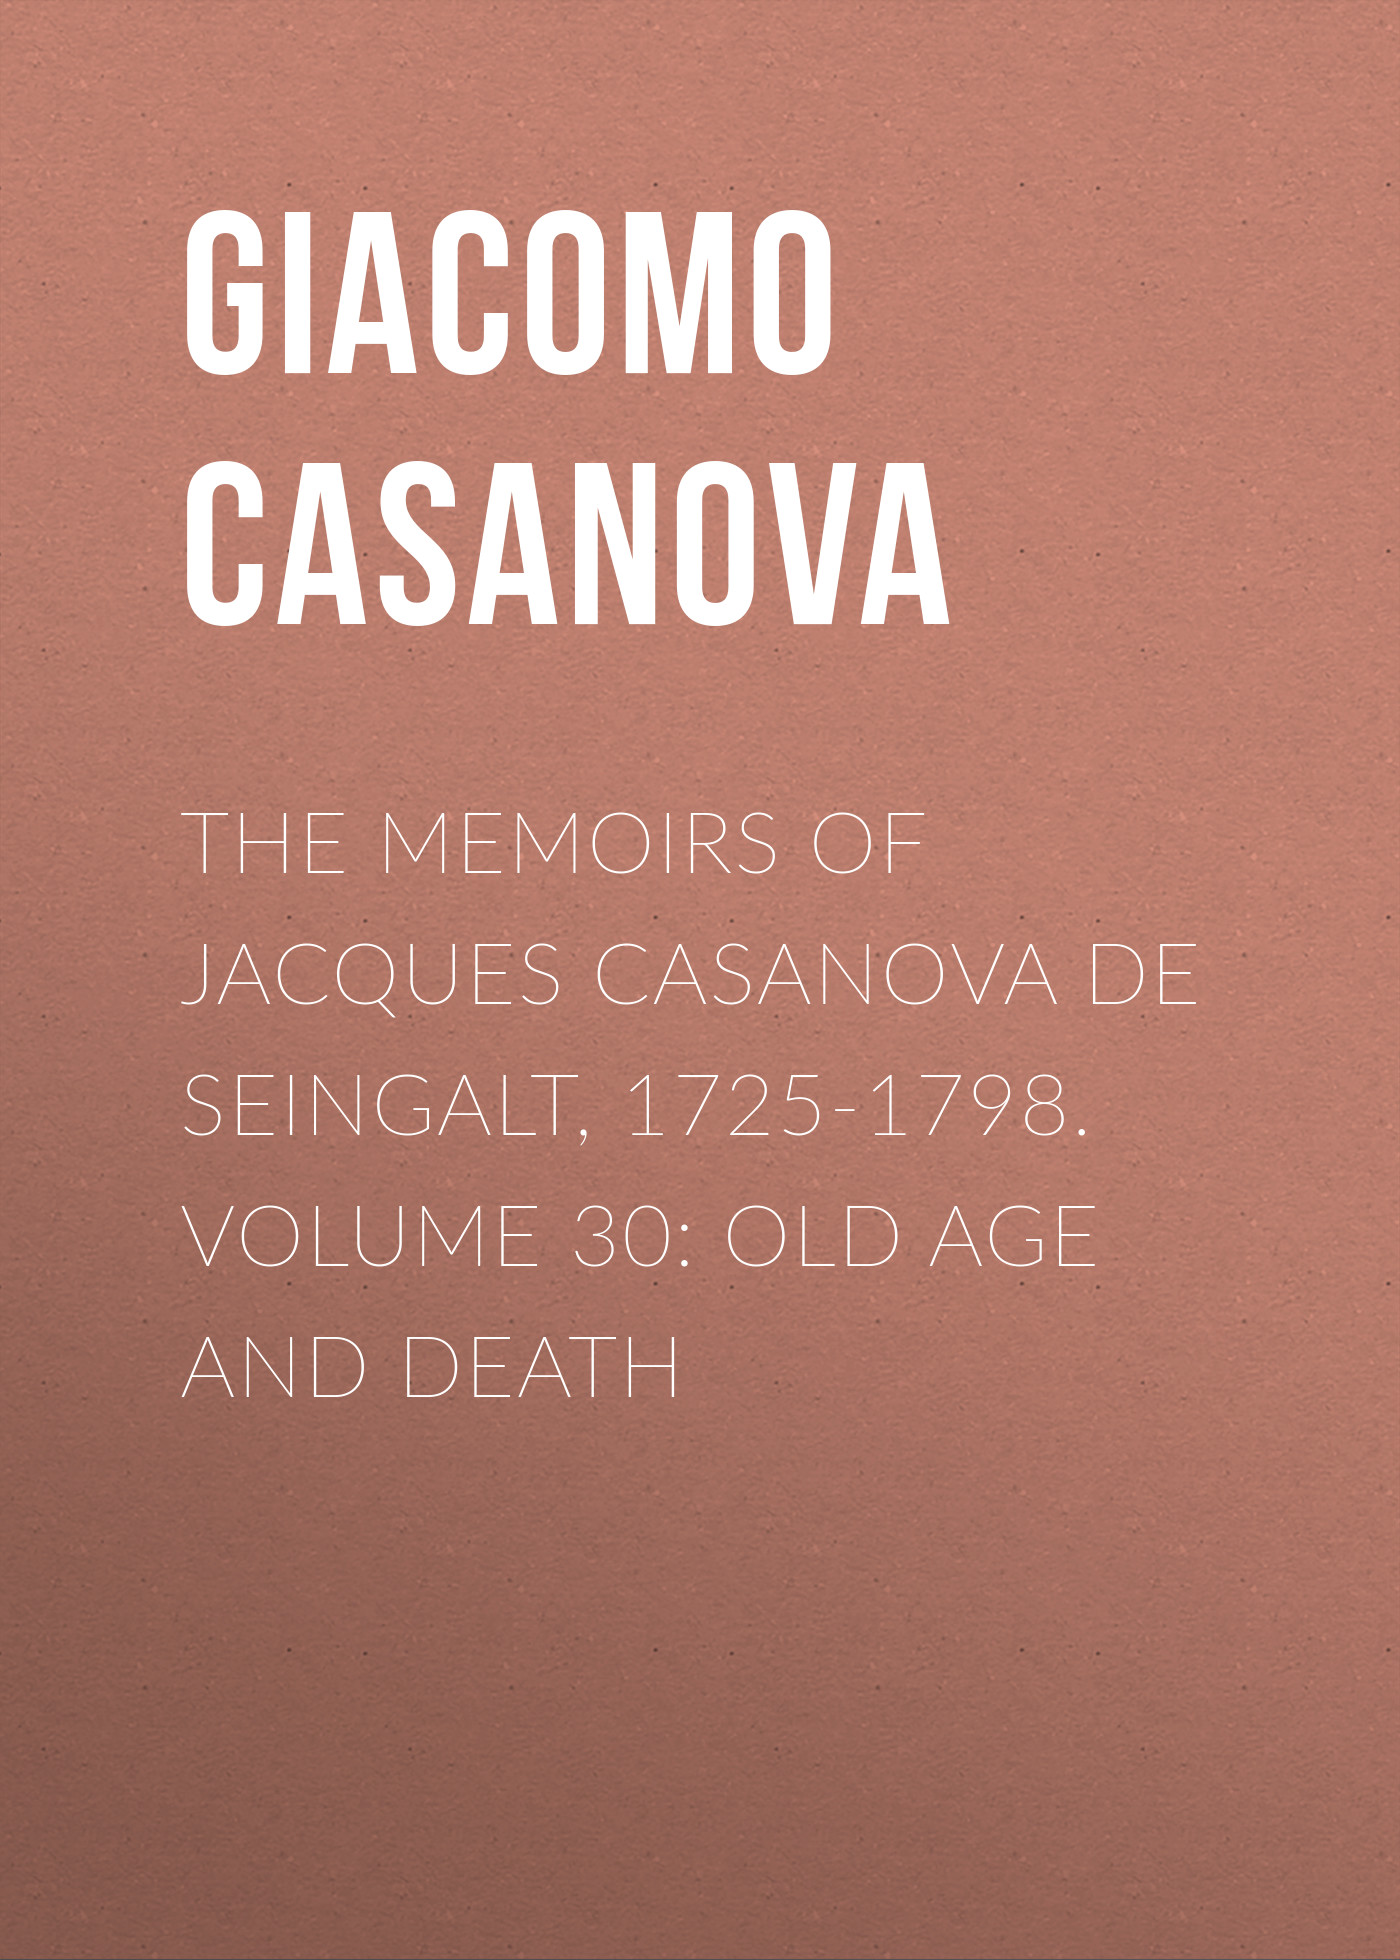 Giacomo Casanova The Memoirs of Jacques Casanova de Seingalt, 1725-1798. Volume 30: Old Age and Death giacomo casanova the memoirs of jacques casanova de seingalt 1725 1798 volume 30 old age and death